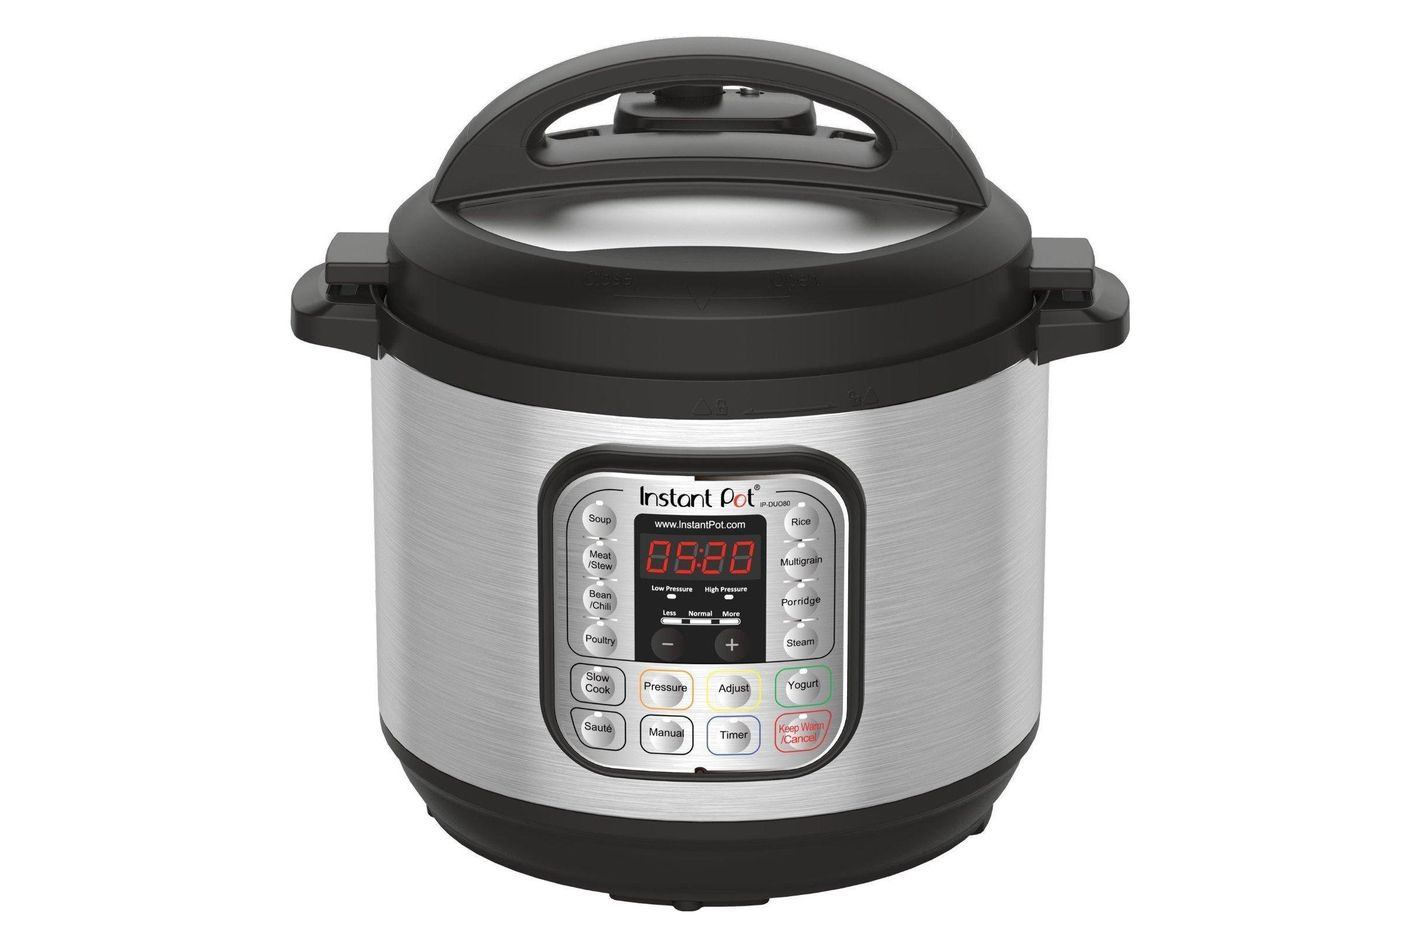 Instant Pot DUO80 8-Qt 7-in-1 Multi-Use Programmable Pressure Cooker